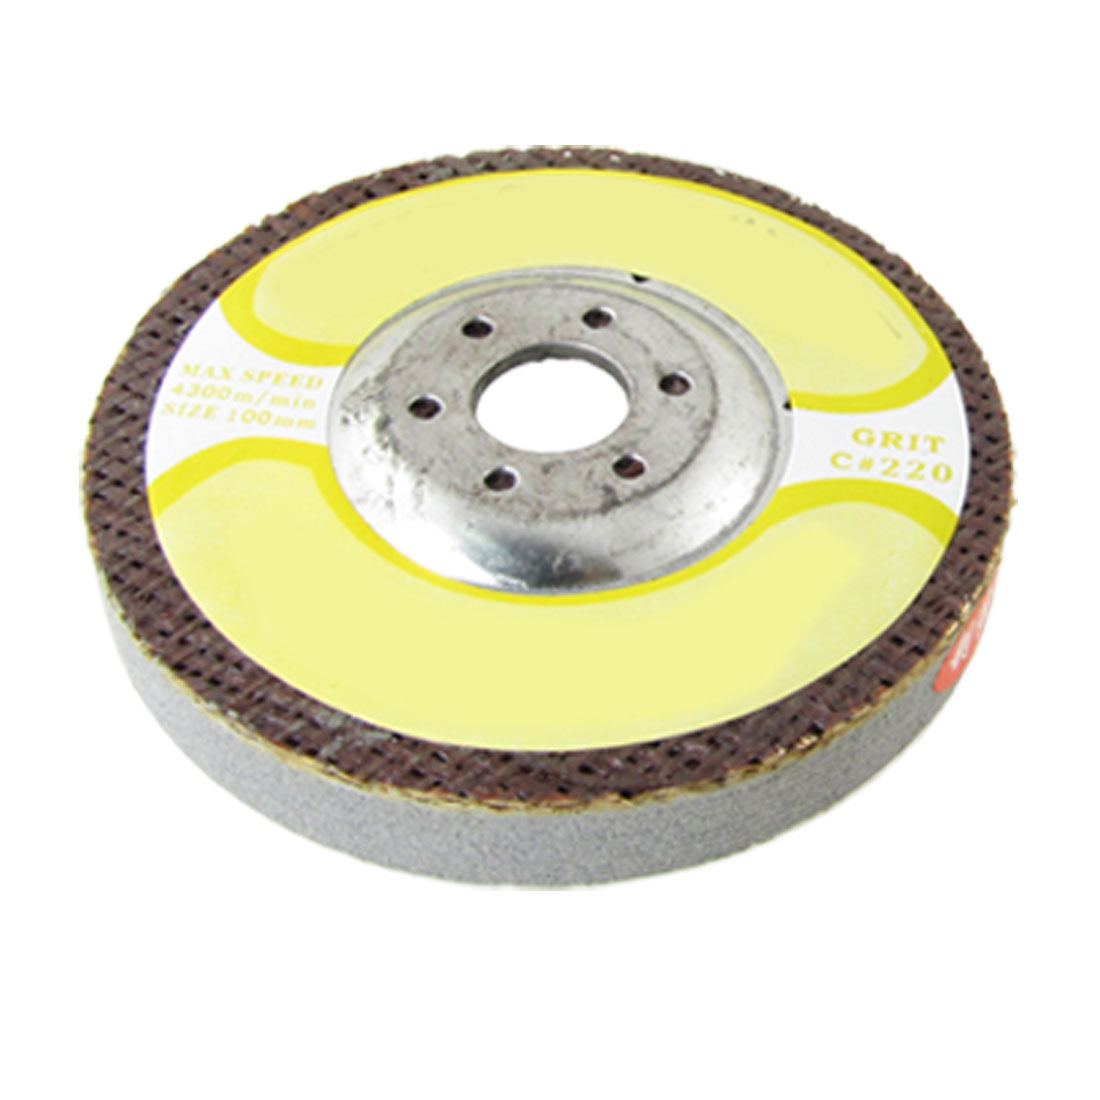 "4"" Outside Dia. 220 Grit Whetstone Grinding Wheel 9/16"" Thick"